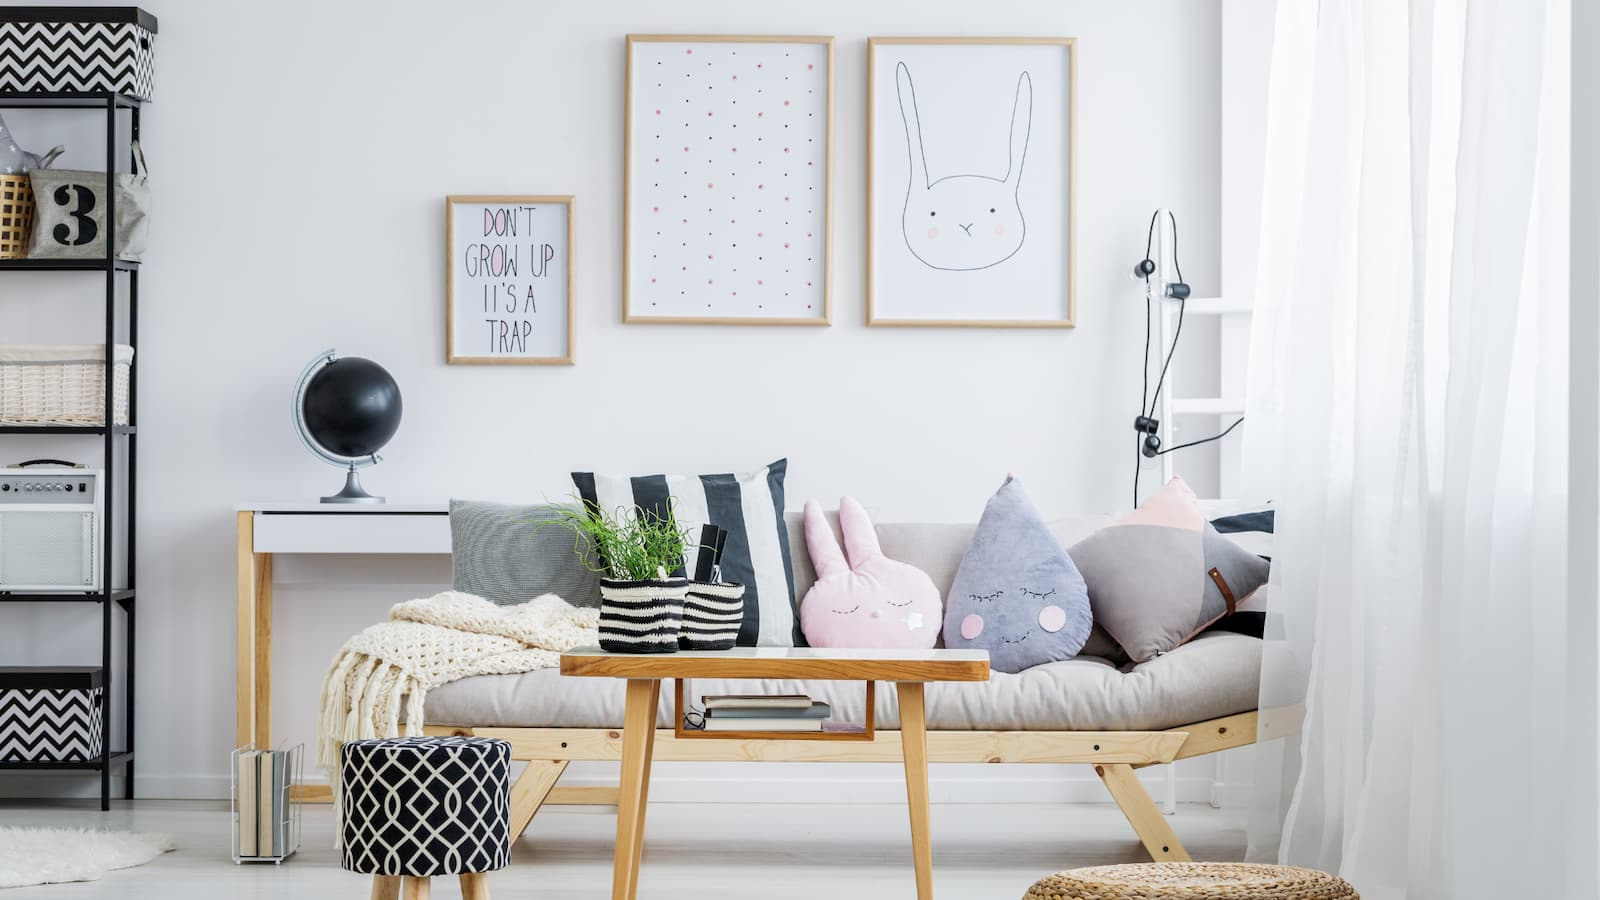 Learn more about how white paint can make your room look bigger